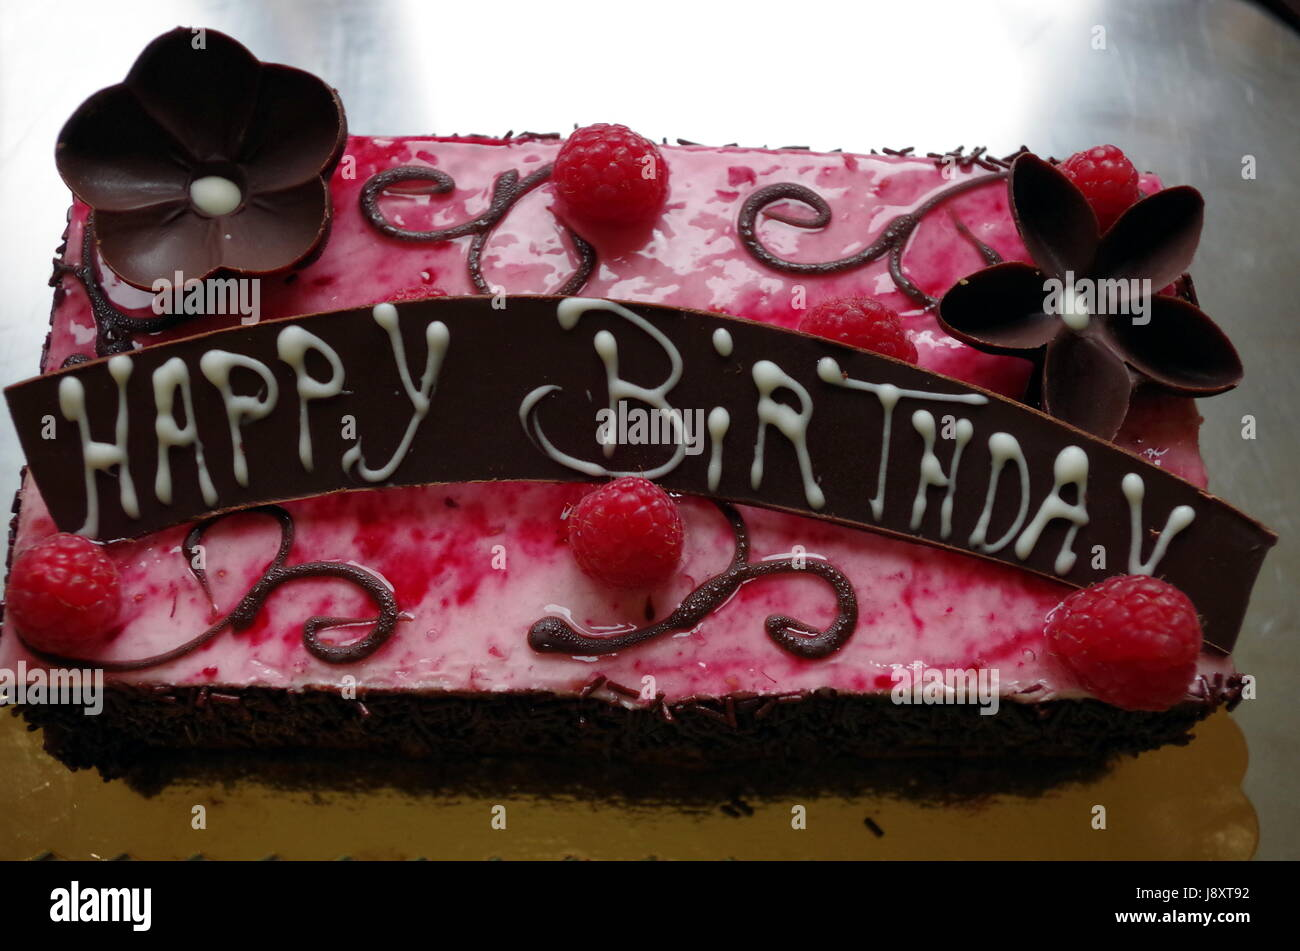 Chocolate Birthday Cake With Flower And Raspberry Decorations A HAPPY BIRTHDAY Sign